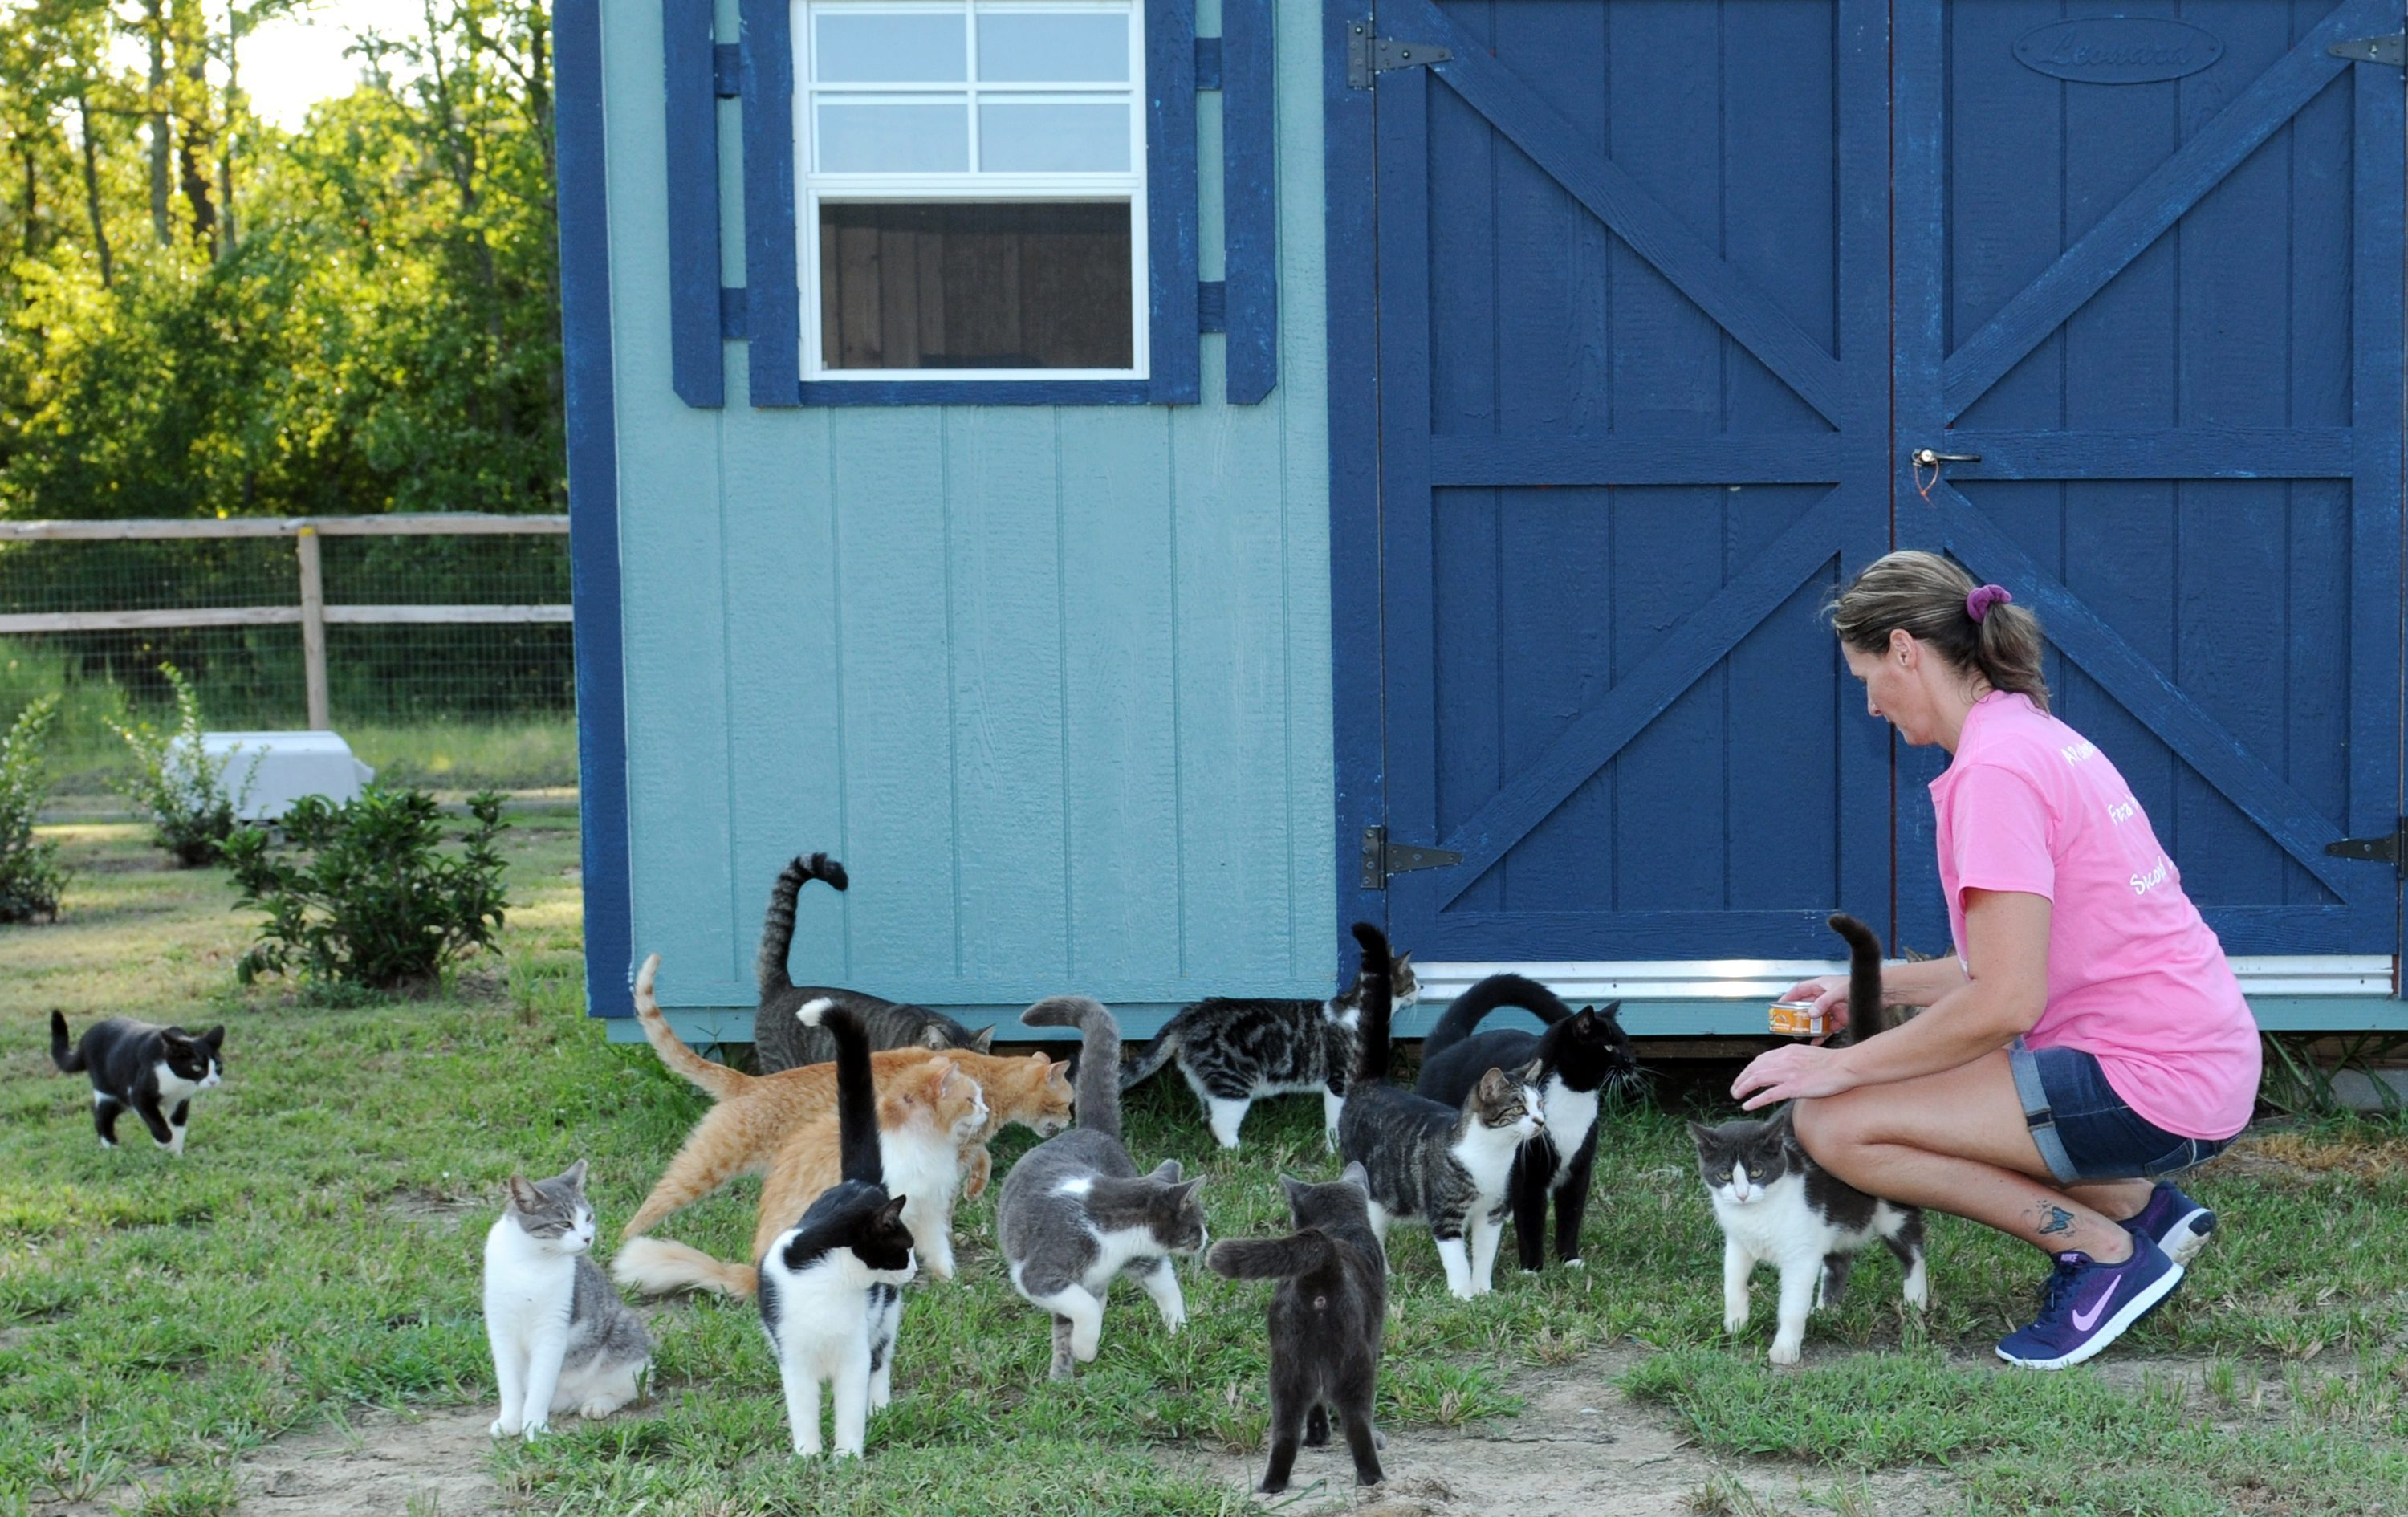 Kimberly with a Group of Cats